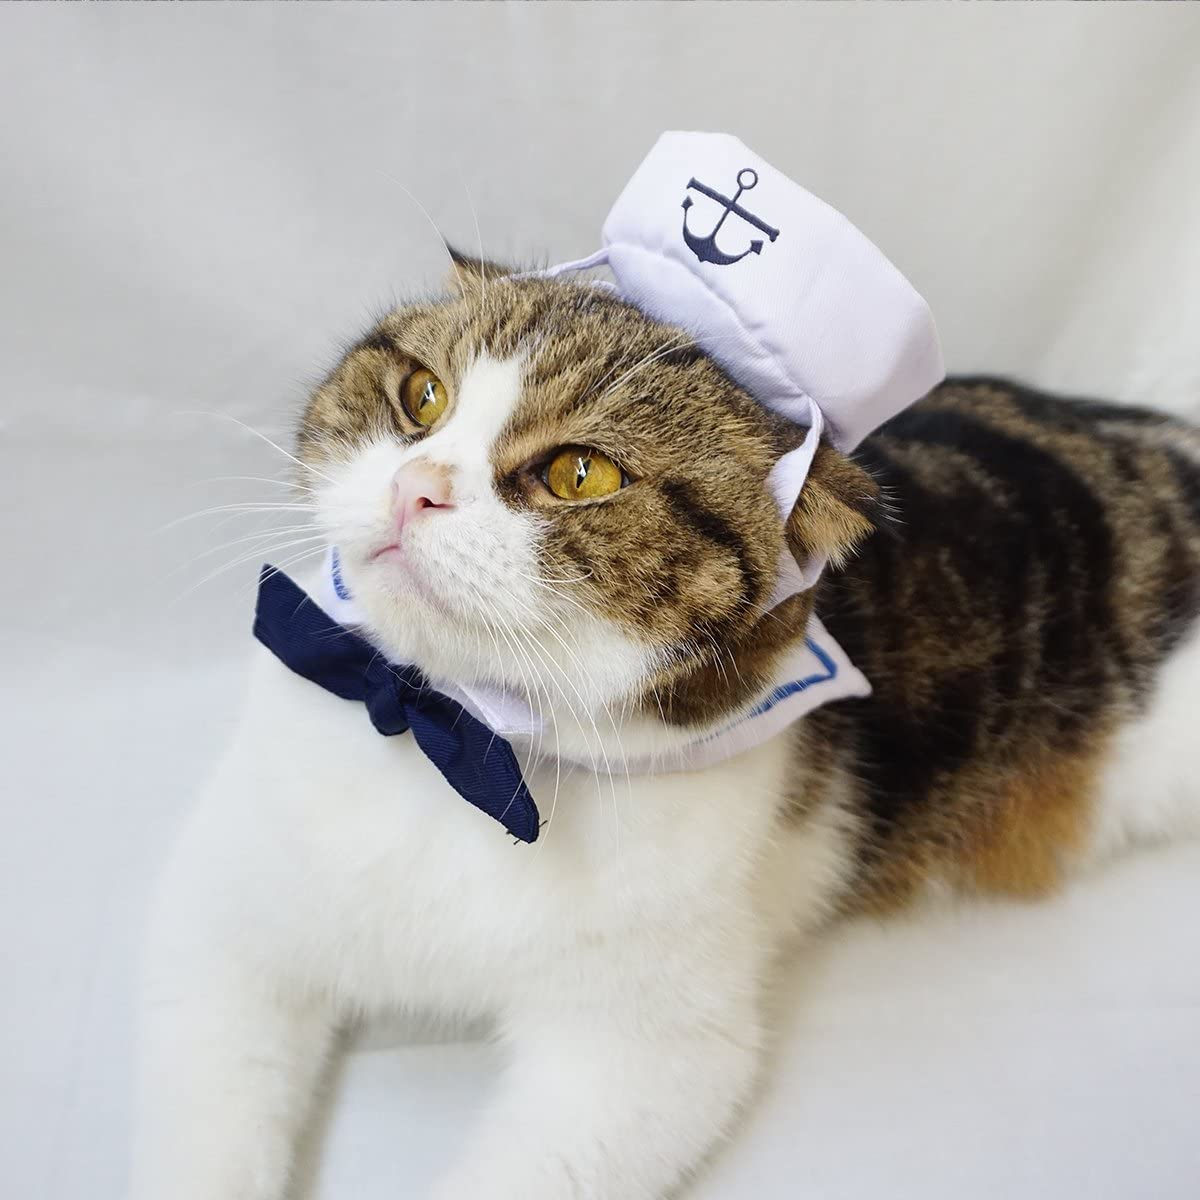 A cat wearing a sailor costume